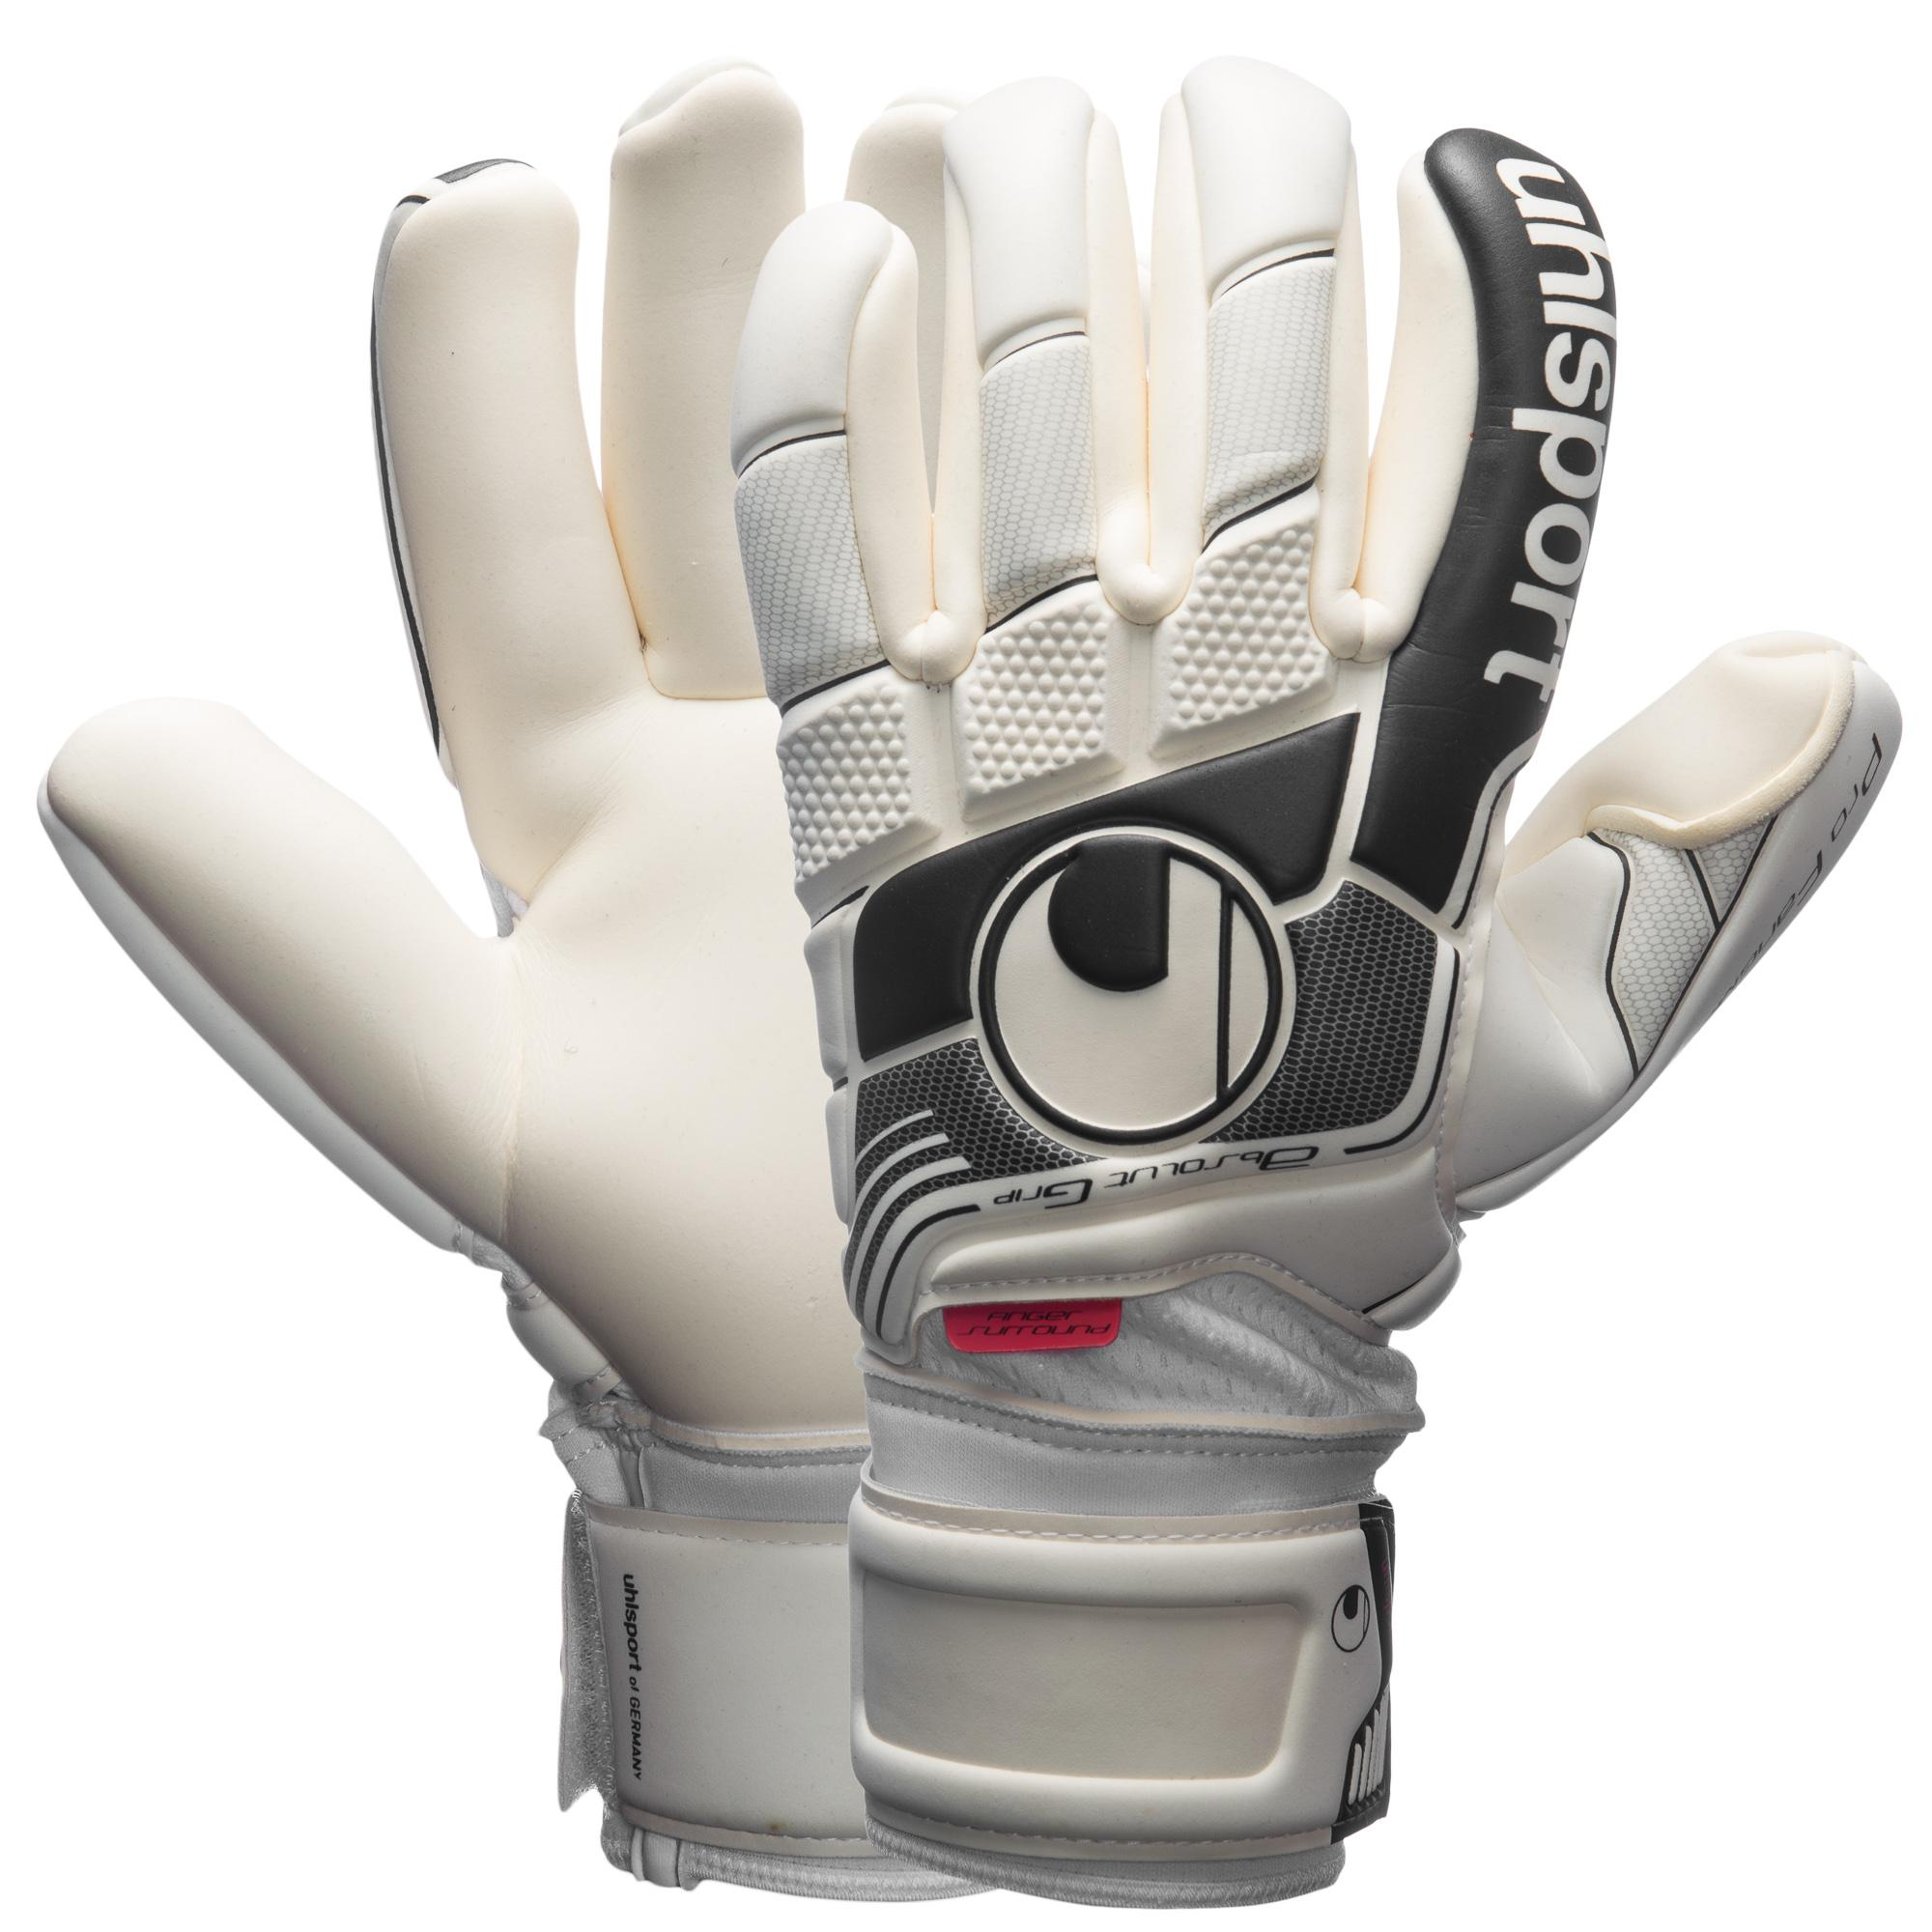 Uhlsport Målvaktshandske Fangmaschine Absolutgrip Finger Surround Vit/Grå